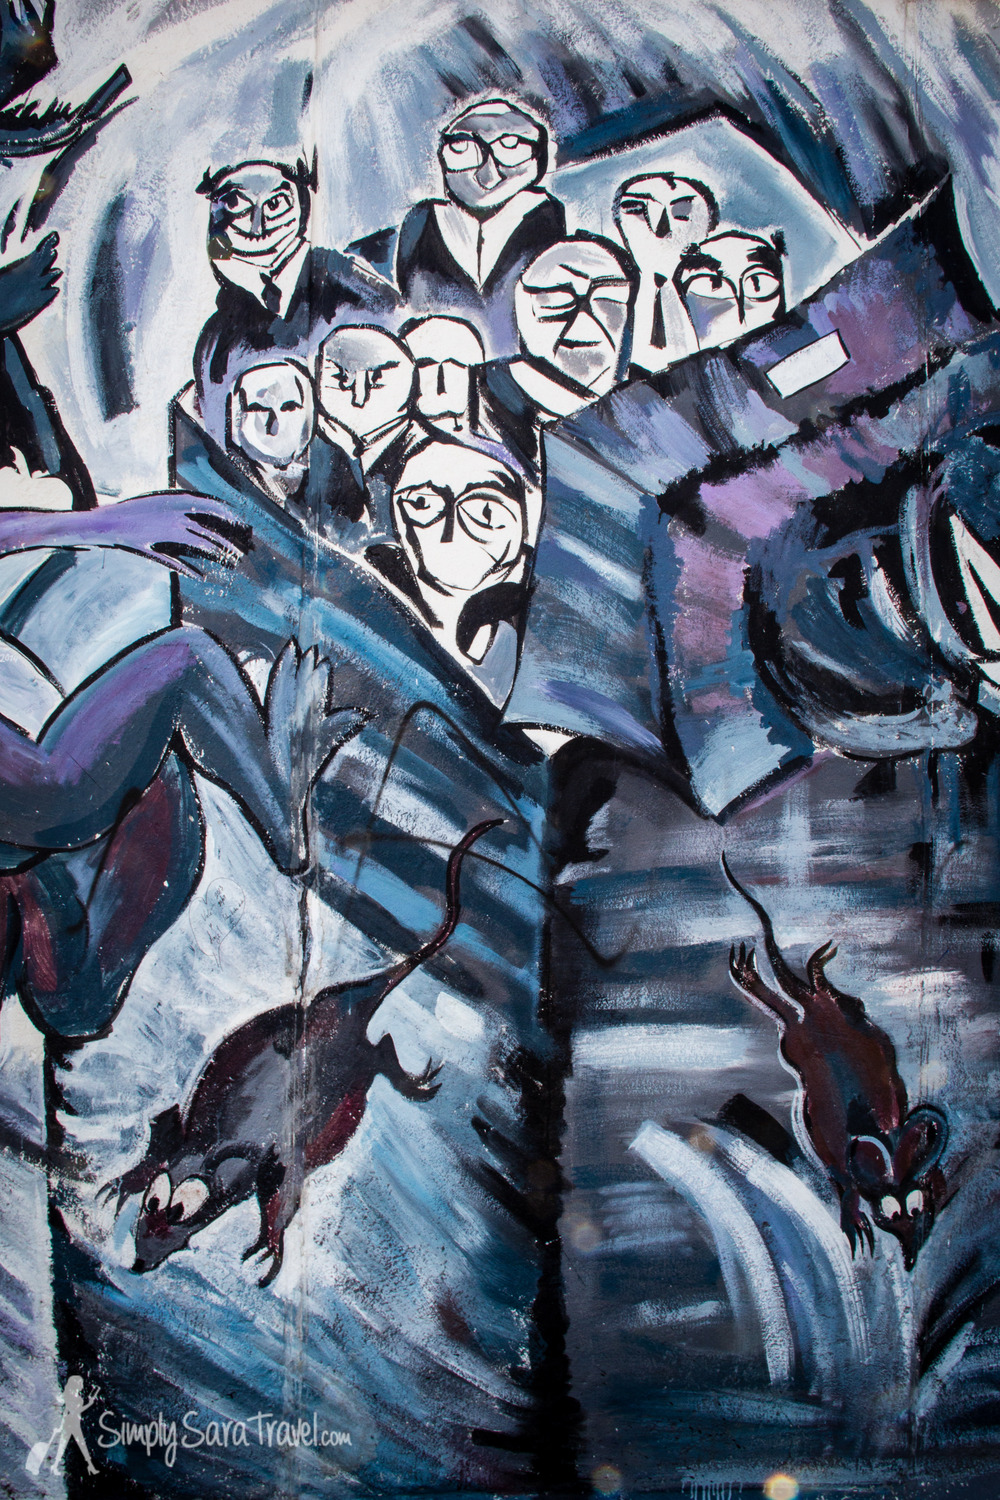 Dark painting at East Side Gallery, Berlin, Germany